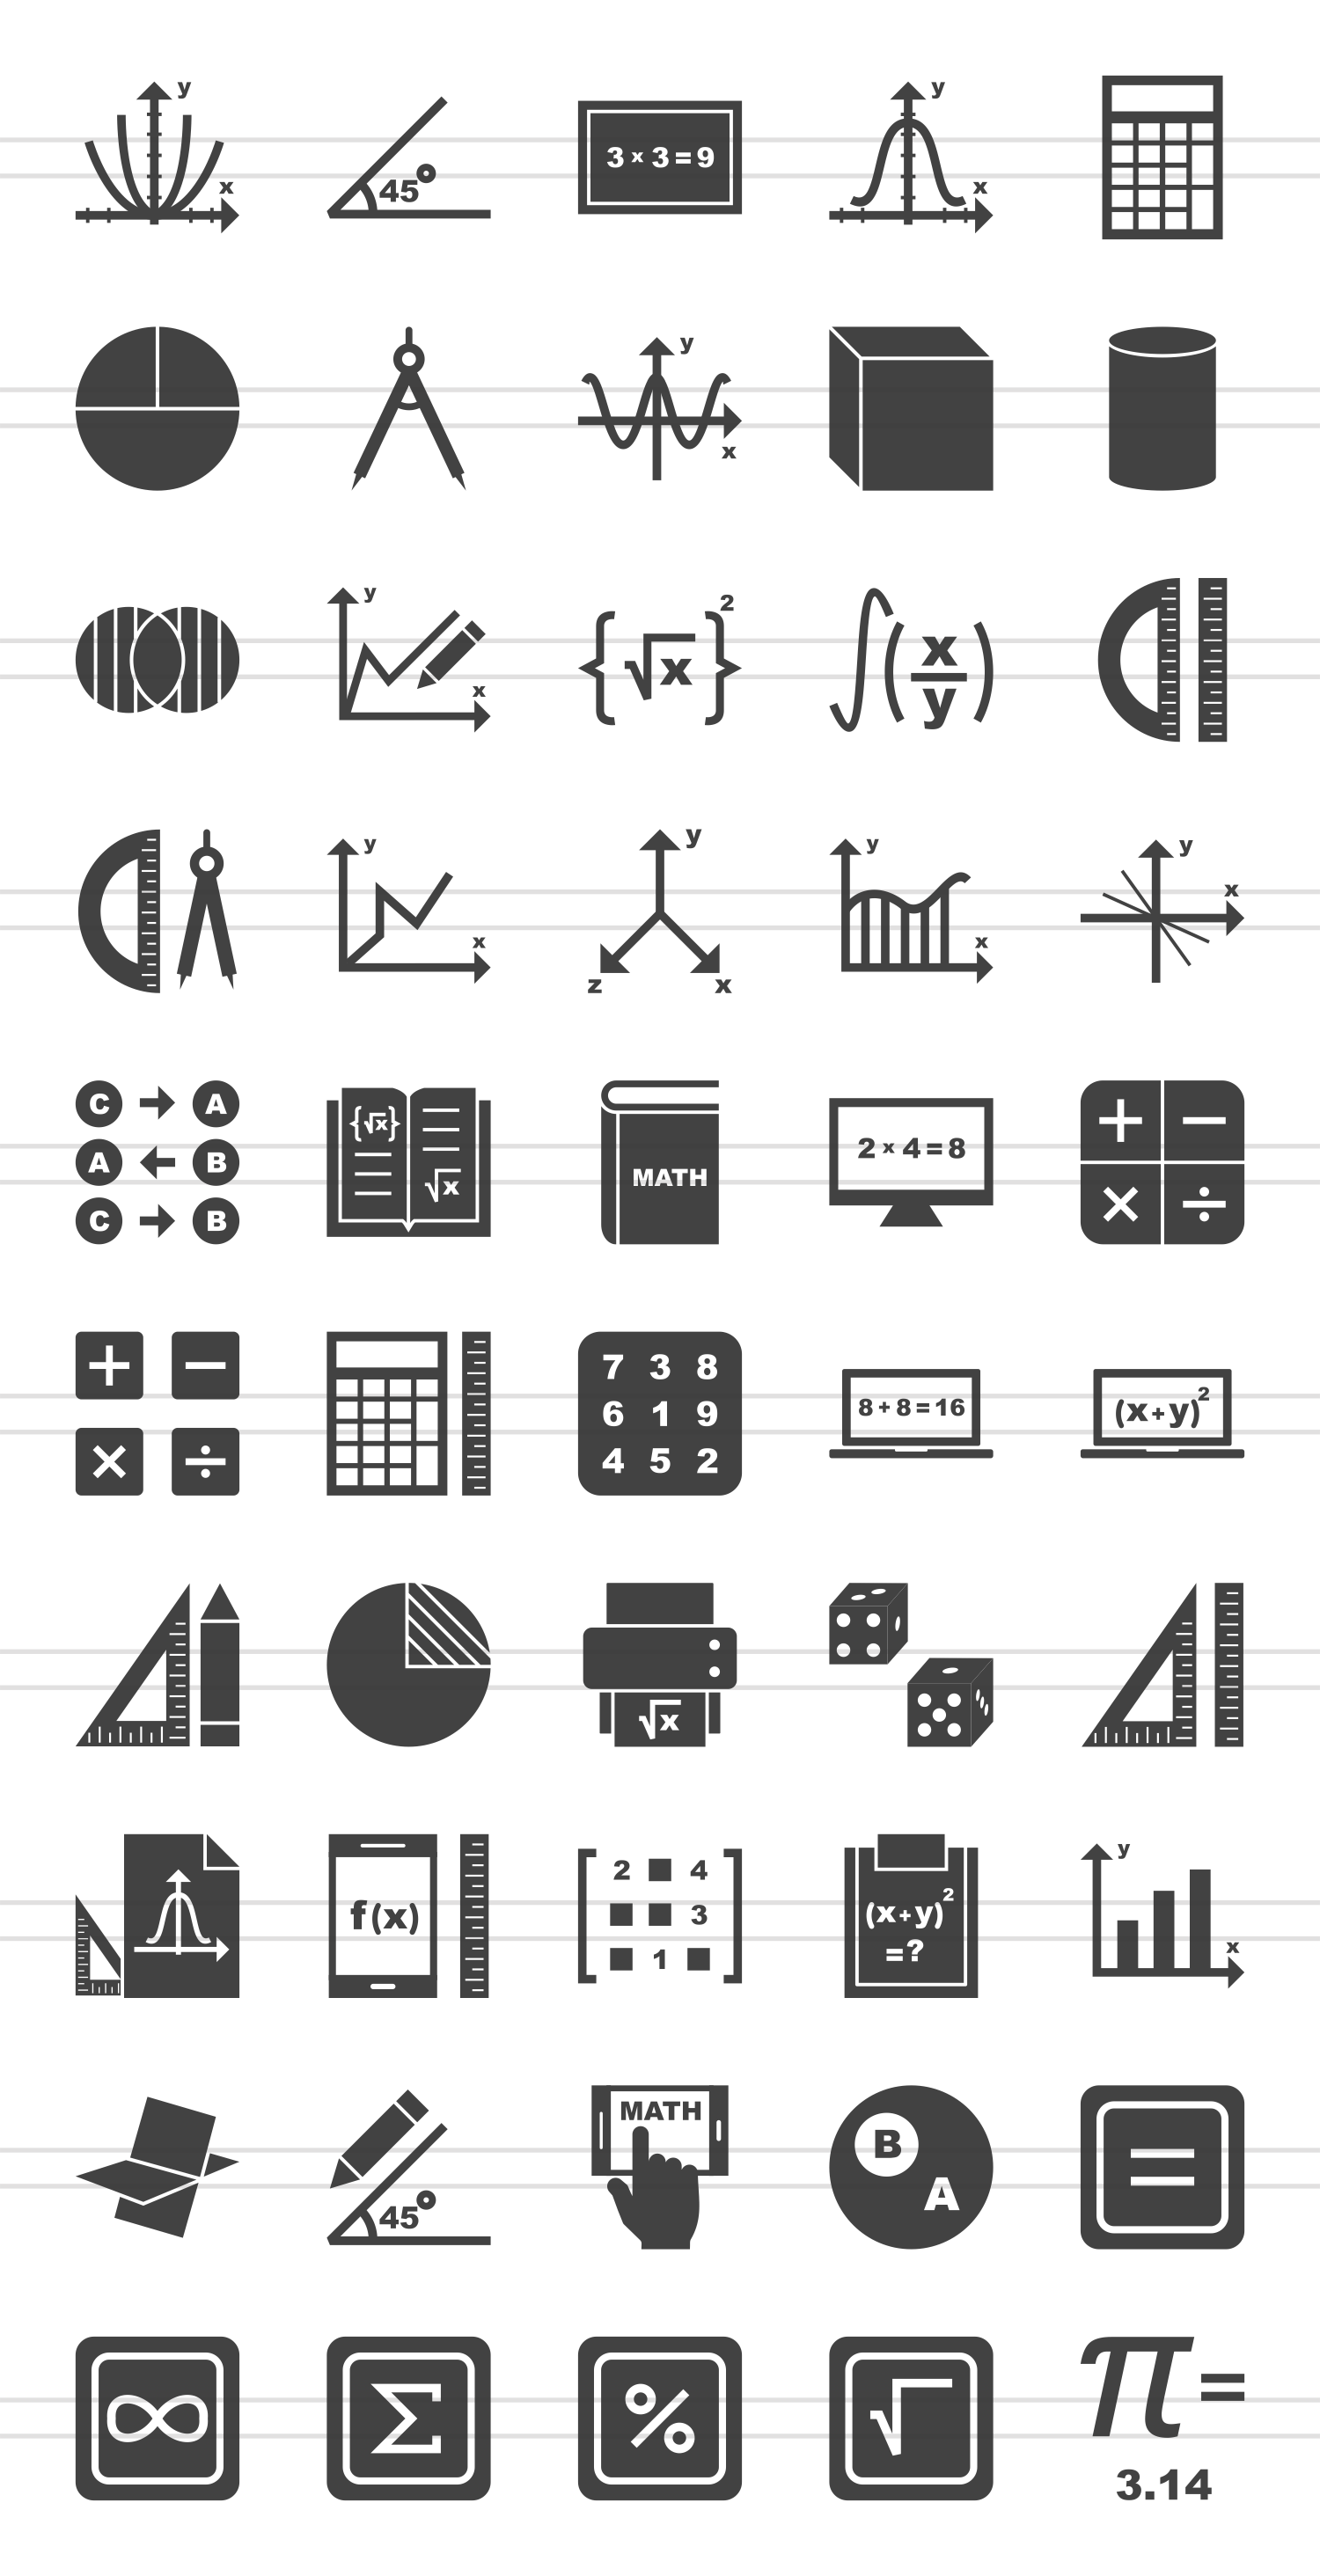 50 math symbols glyph icons by iconbunny design bundles 50 math symbols glyph icons example image 2 biocorpaavc Choice Image